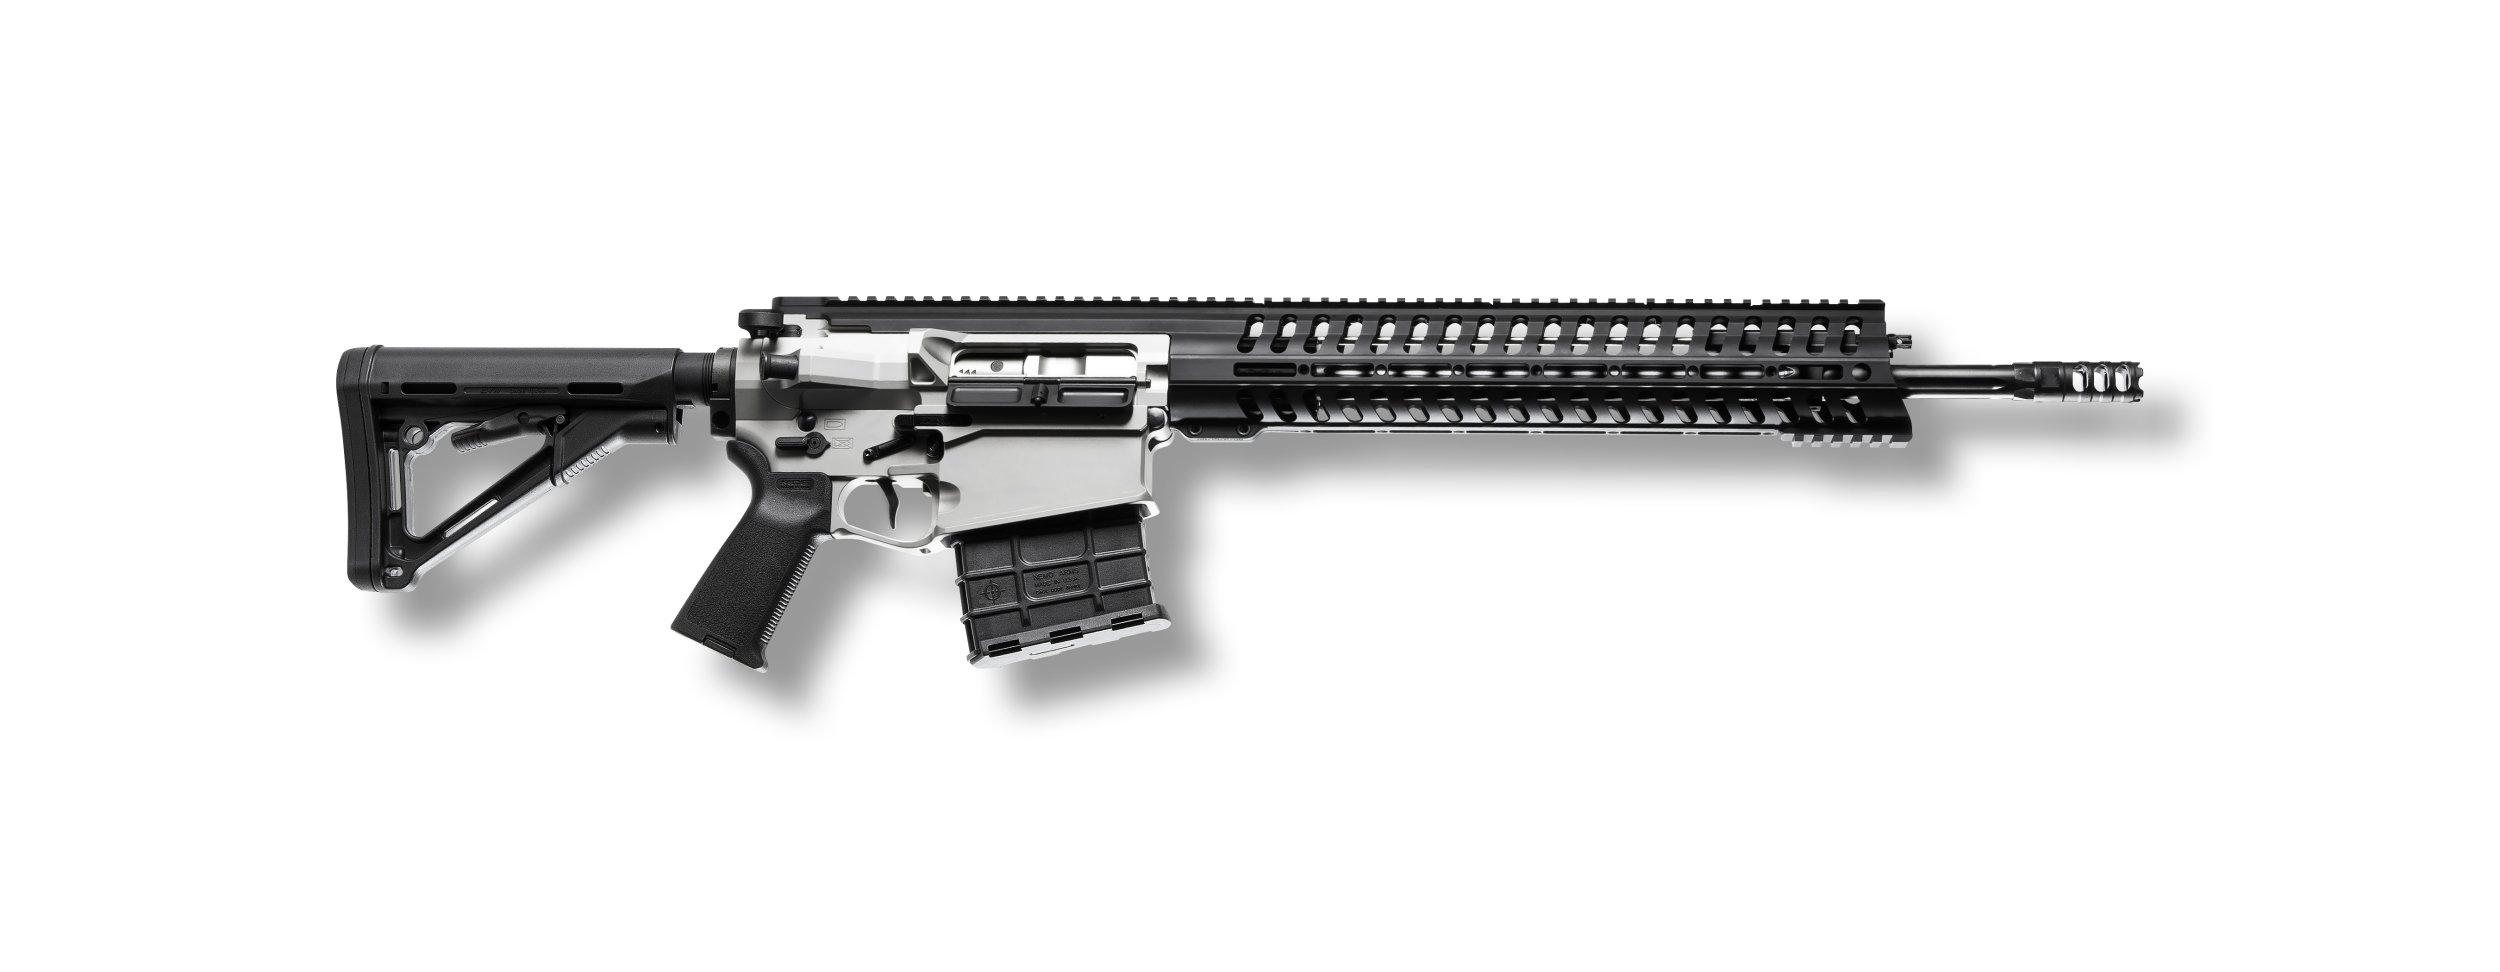 300 win mag tactical rifles related keywords amp suggestions 300 win